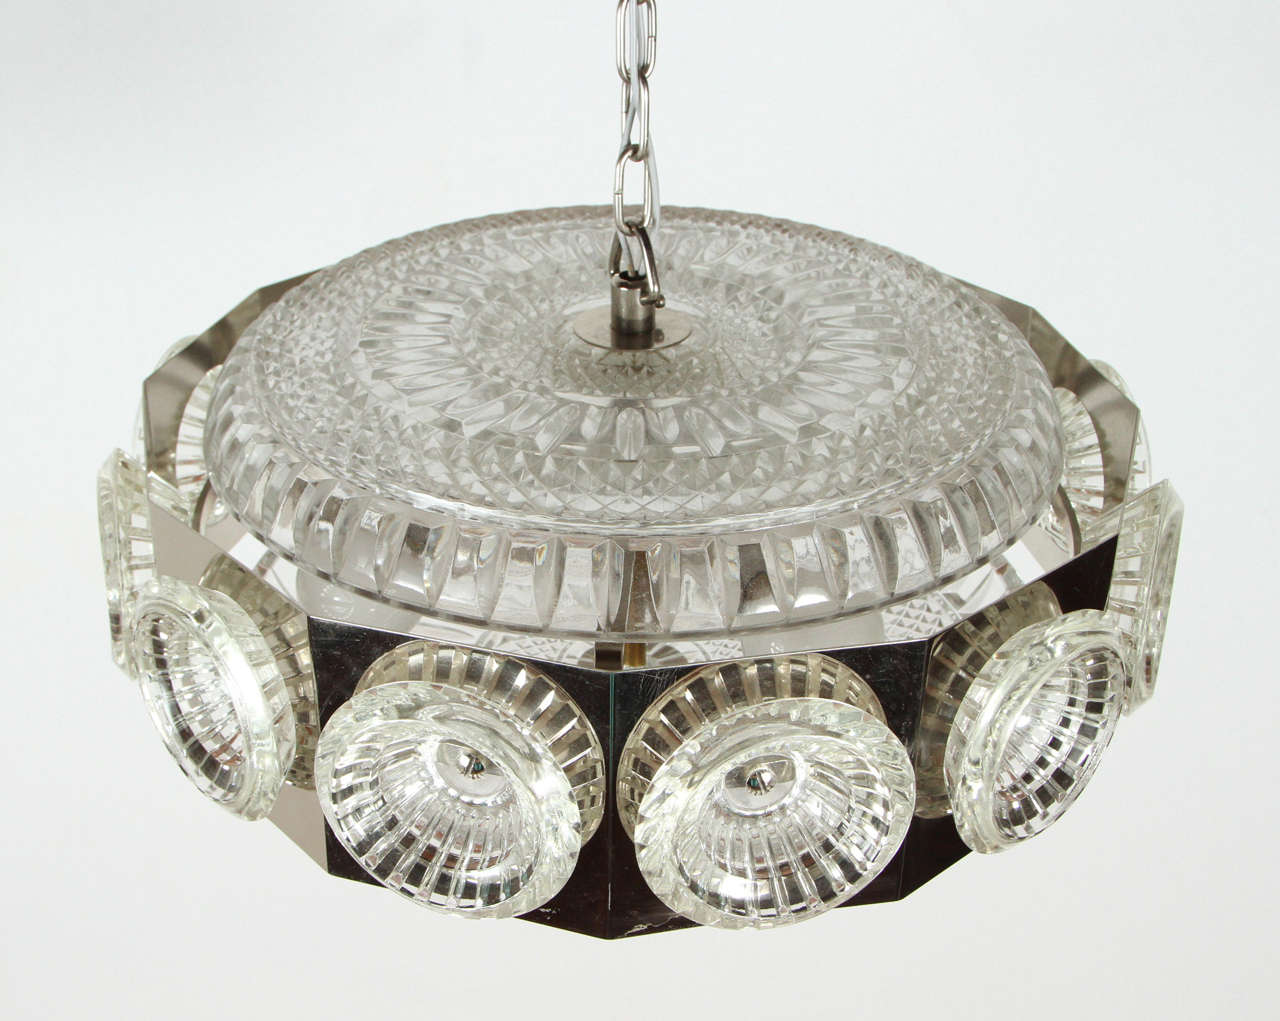 Late 20th Century Chrome Orrefors Hanging Light Fixture For Sale